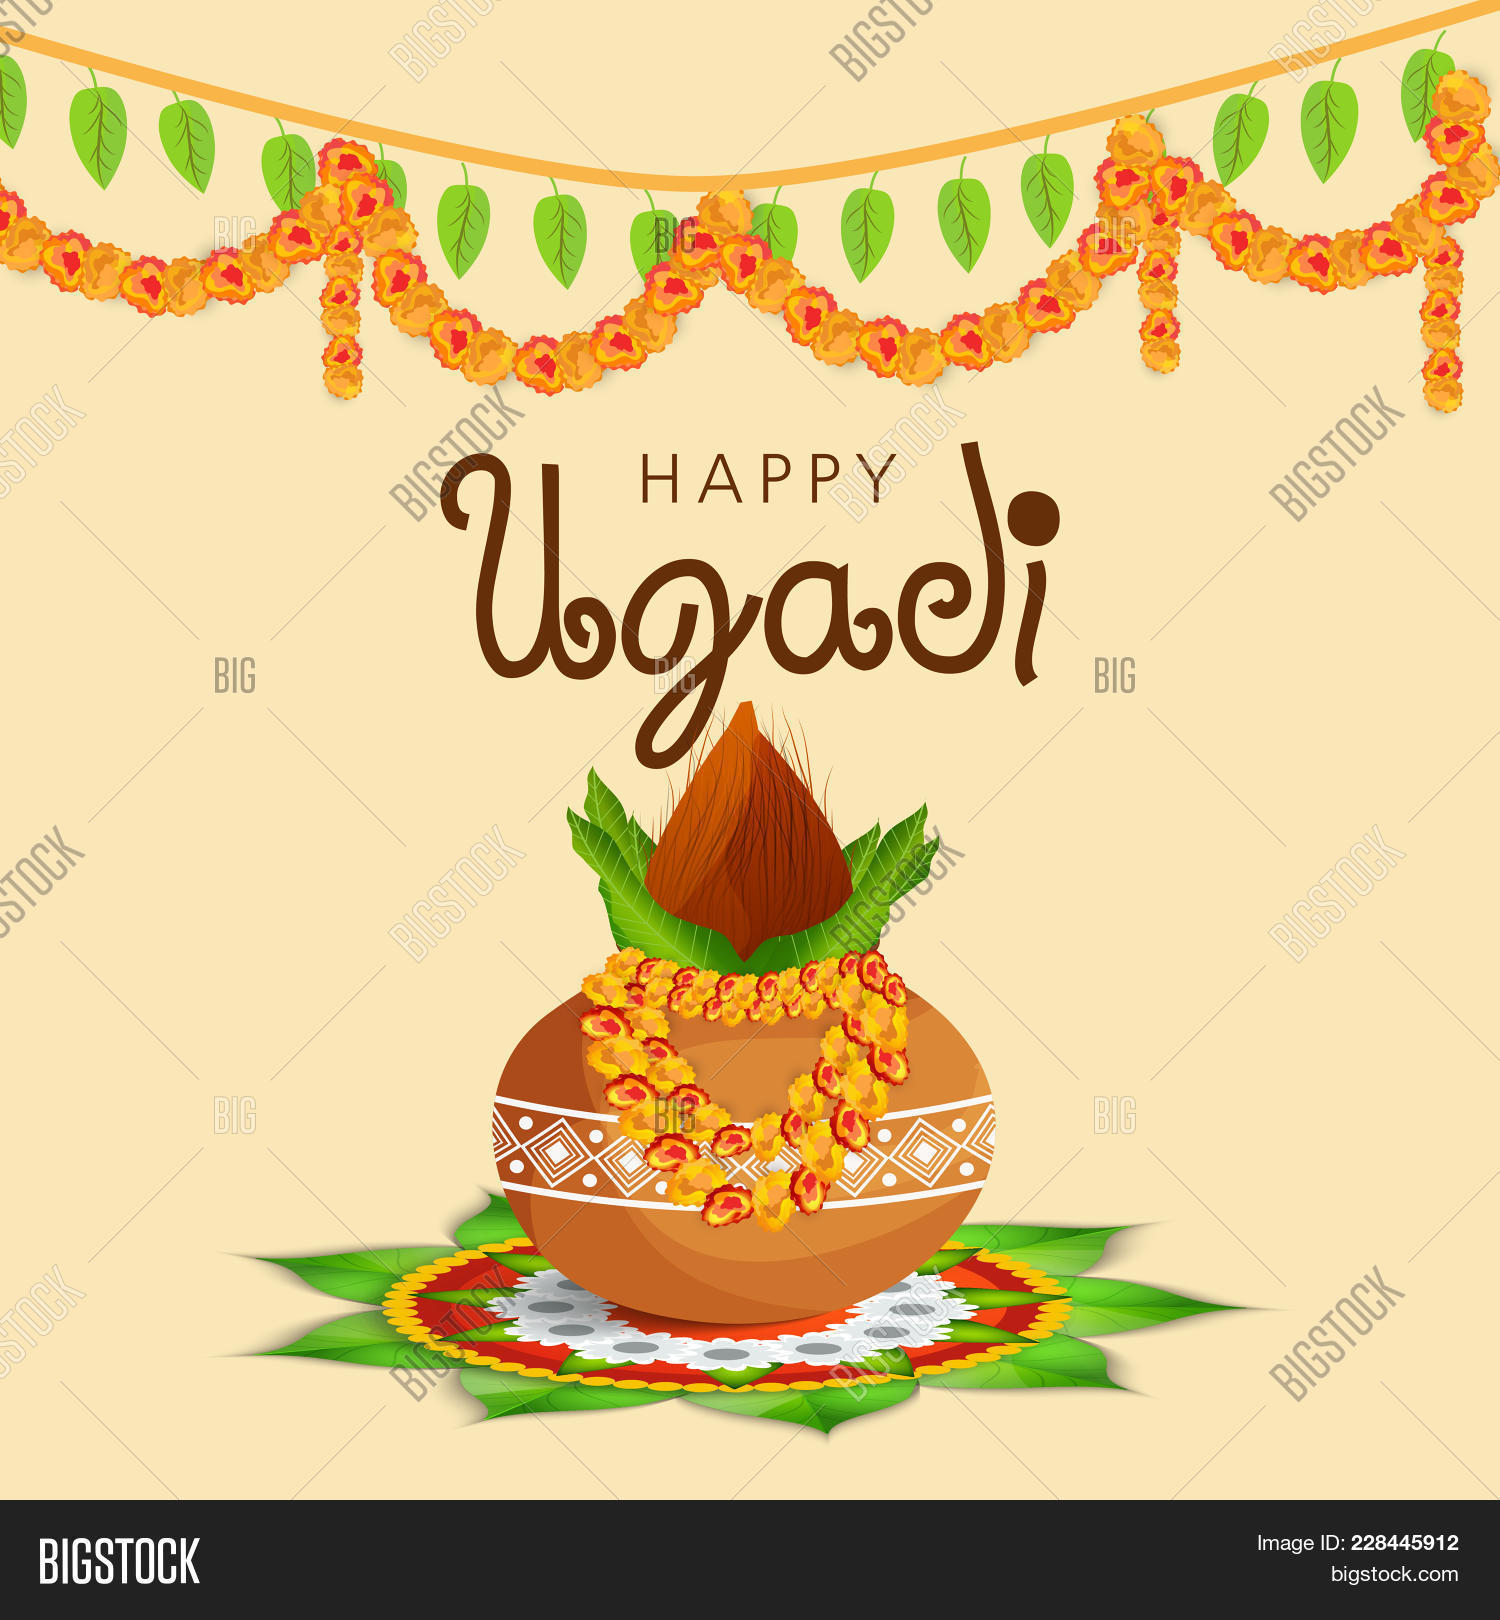 Illustration Happy Ugadi Greeting Image Photo Bigstock